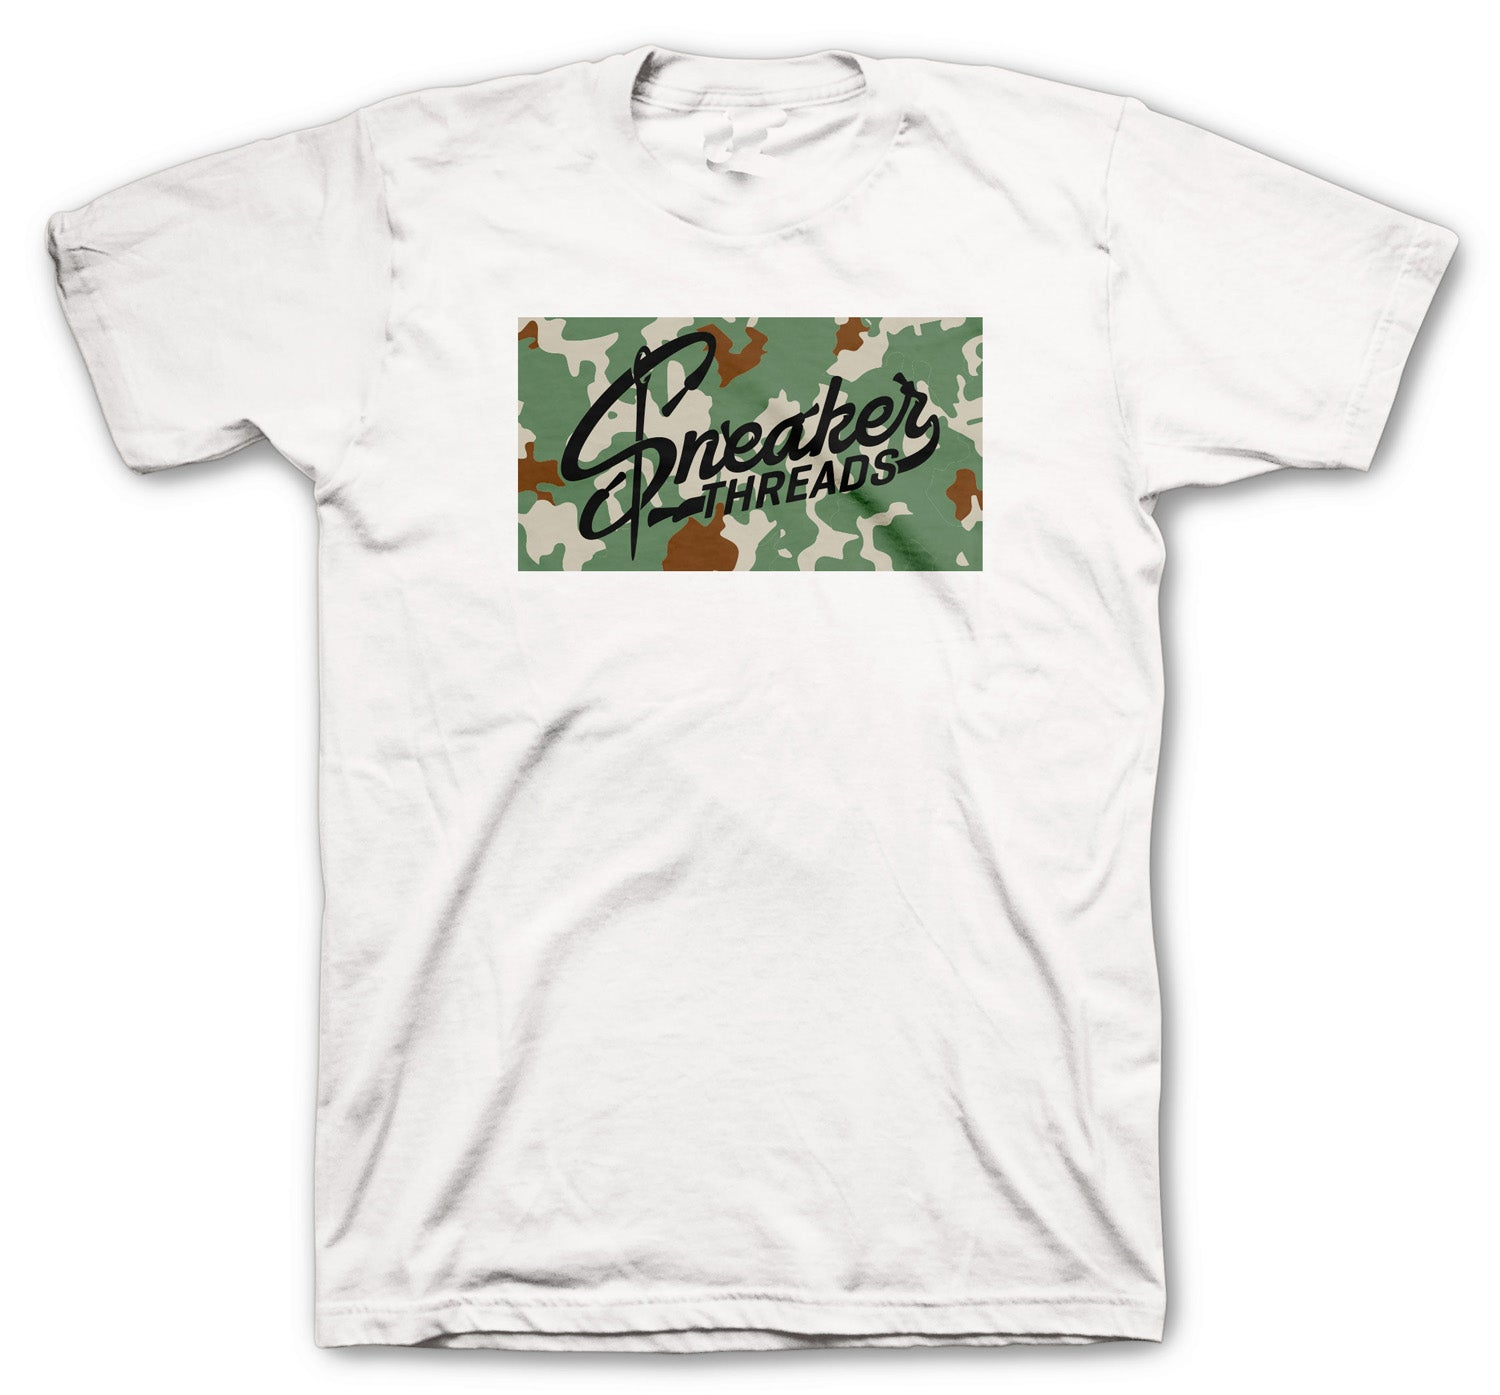 shirt created to match perfectly with Jordan 10 camo desert clay collection